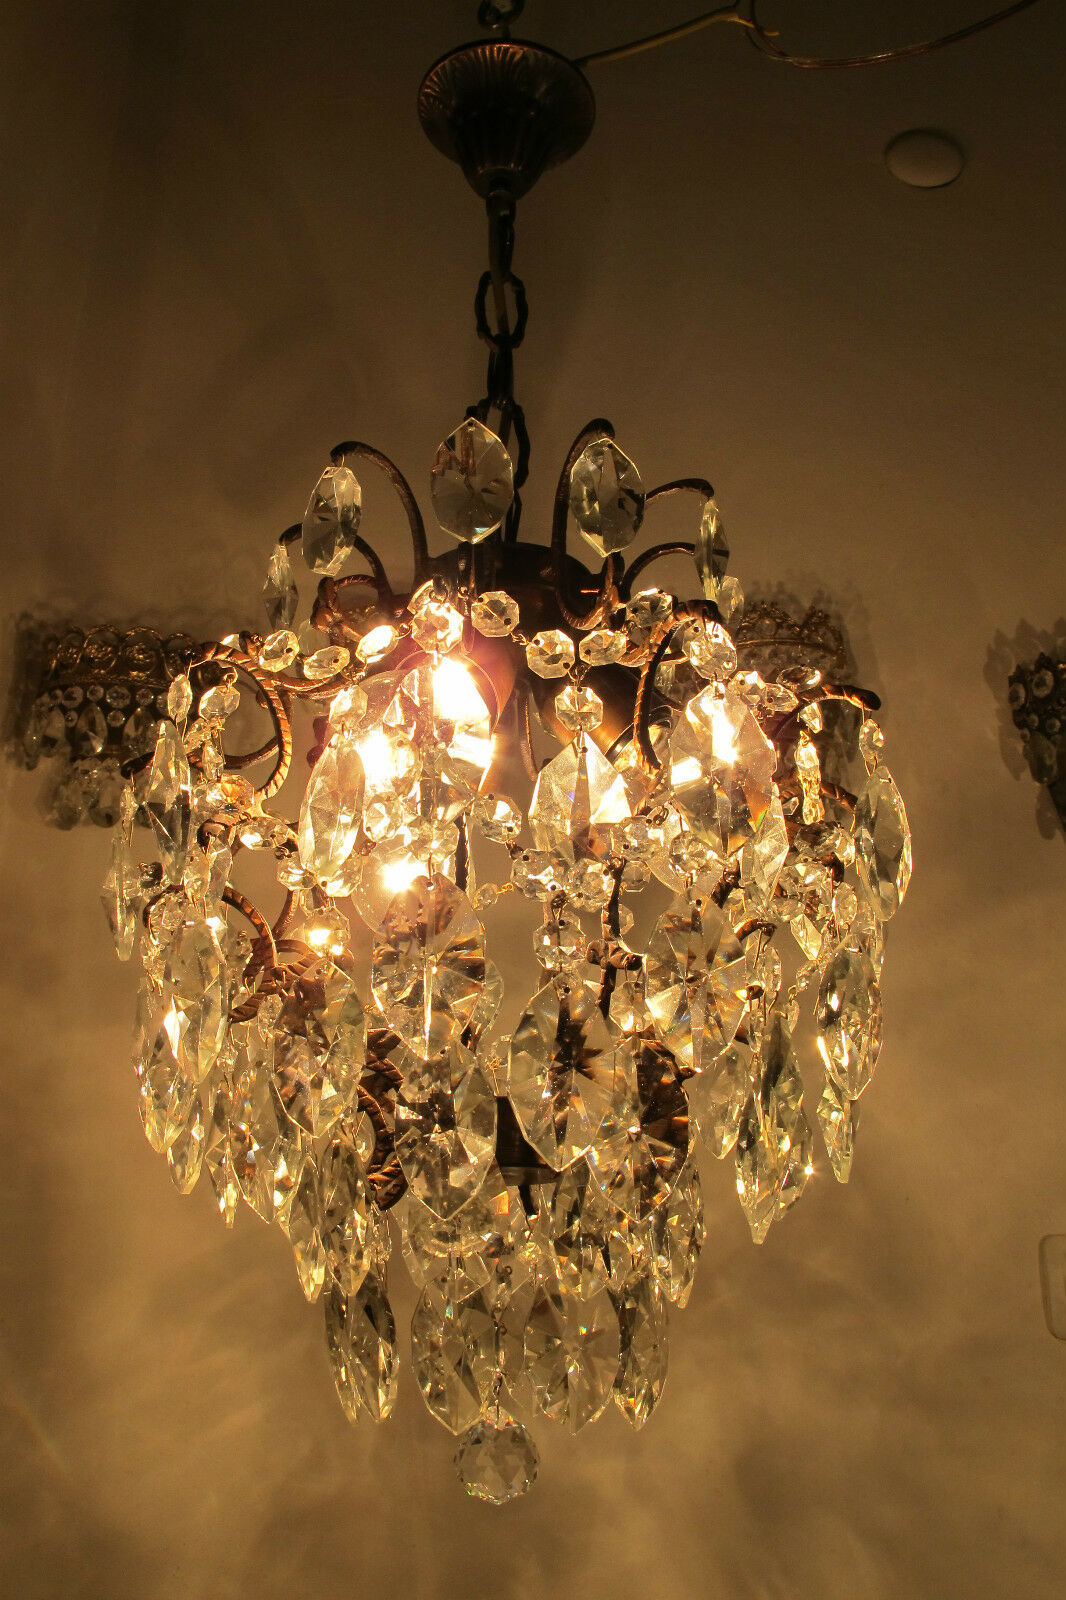 Antique Vnt French Cage Style Czech Crystal Chandelier Lamp Light 1940s 14in dia